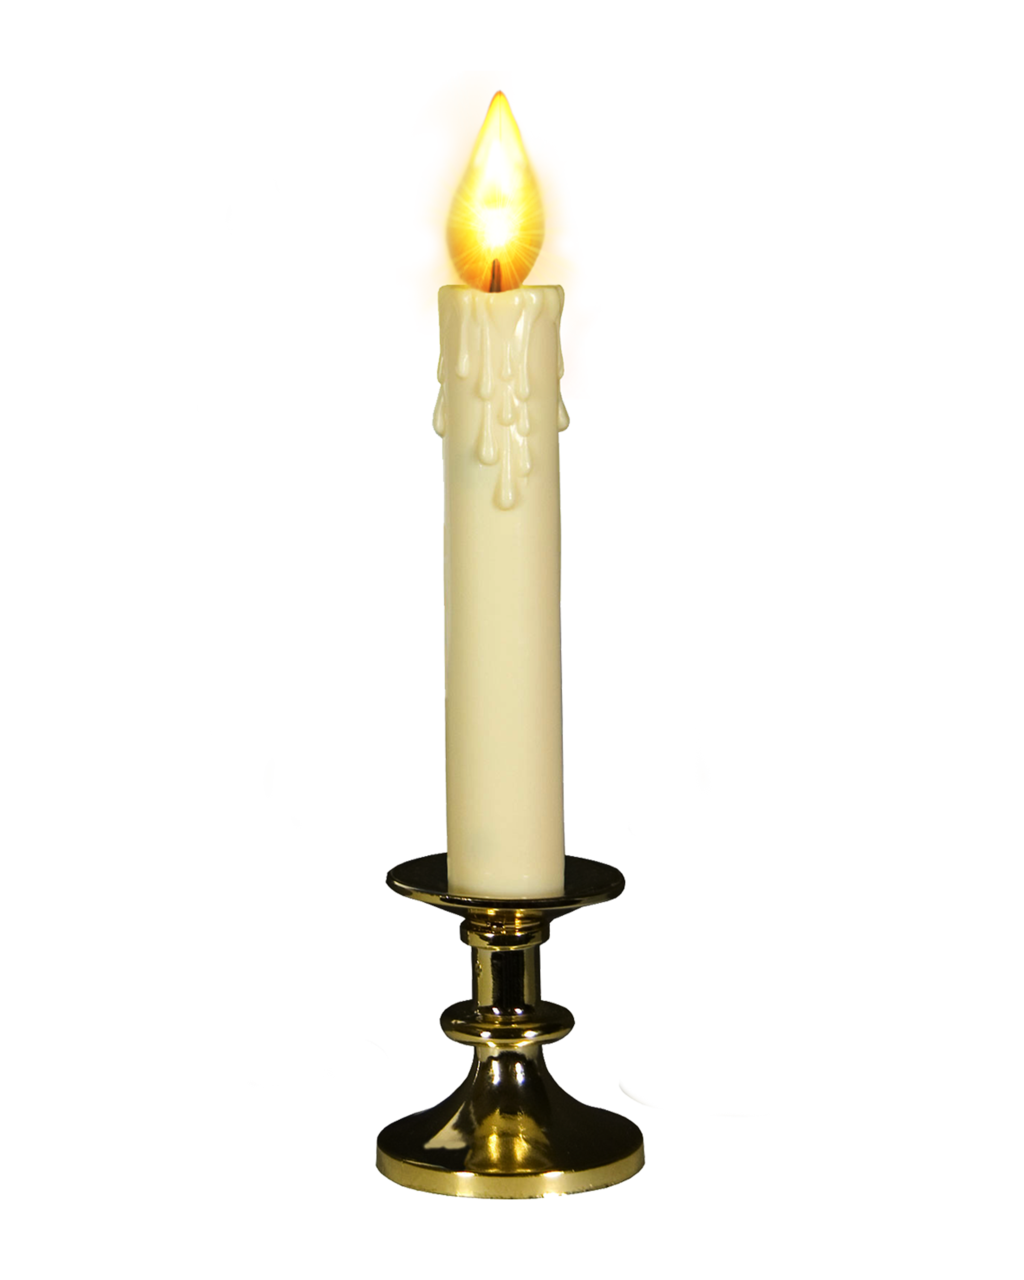 Png candles. Images free download candle